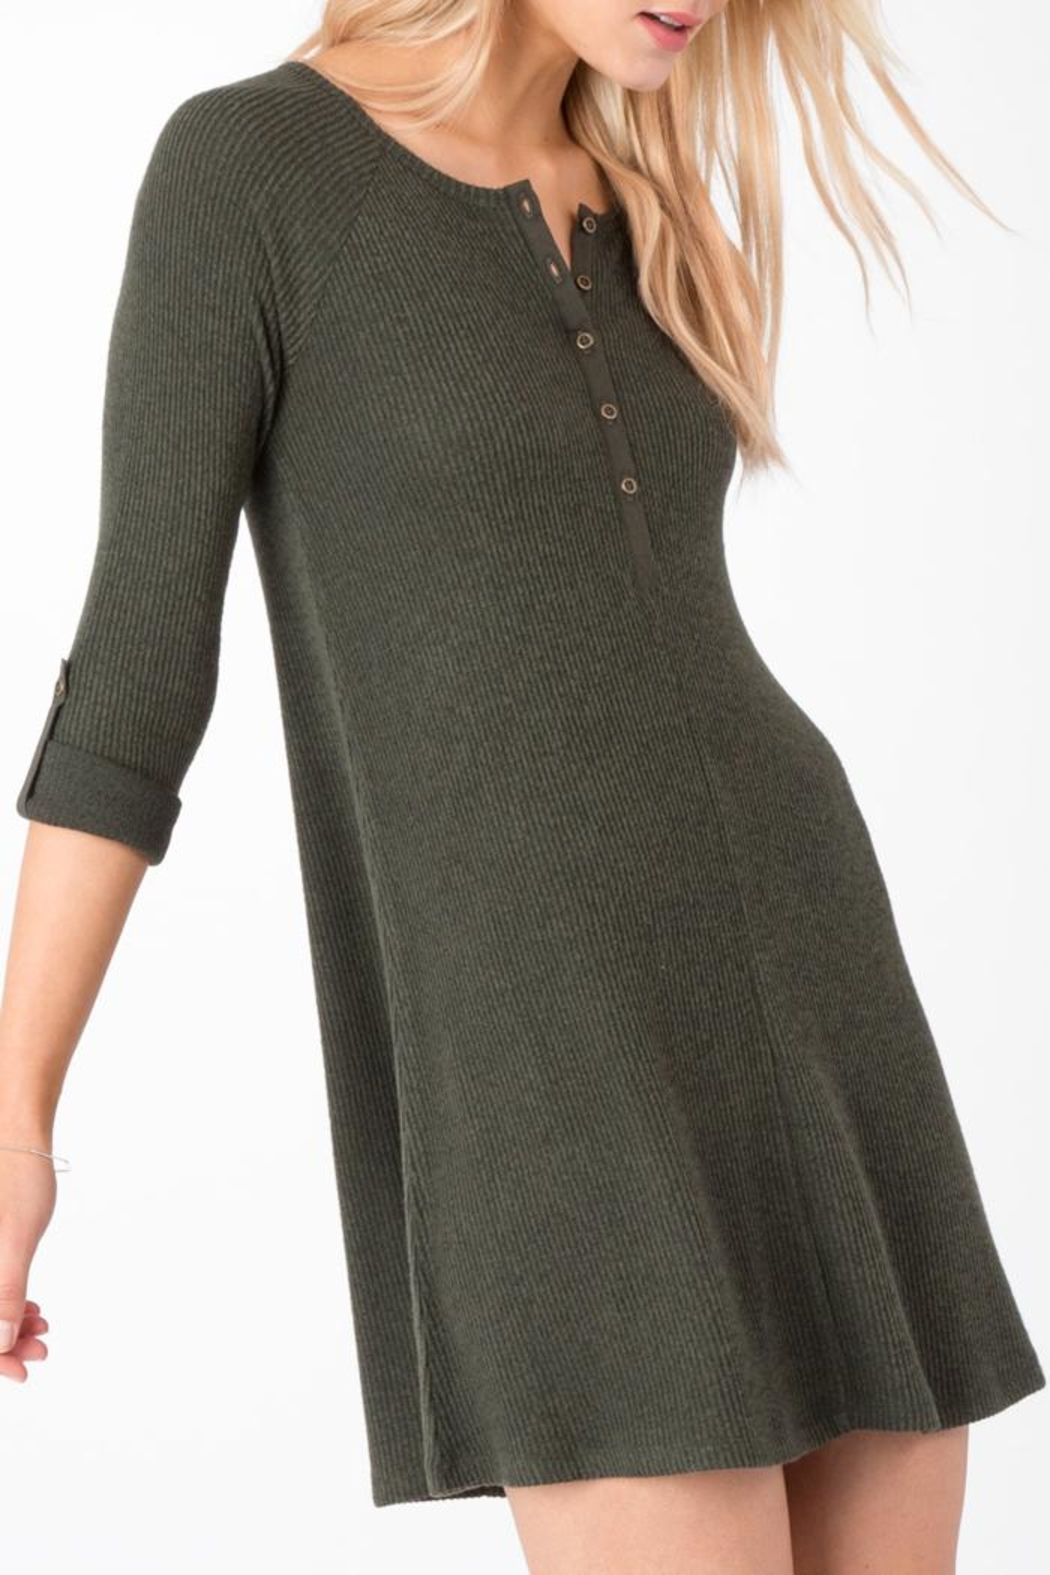 z supply Ribbed Shirt Dress - Side Cropped Image